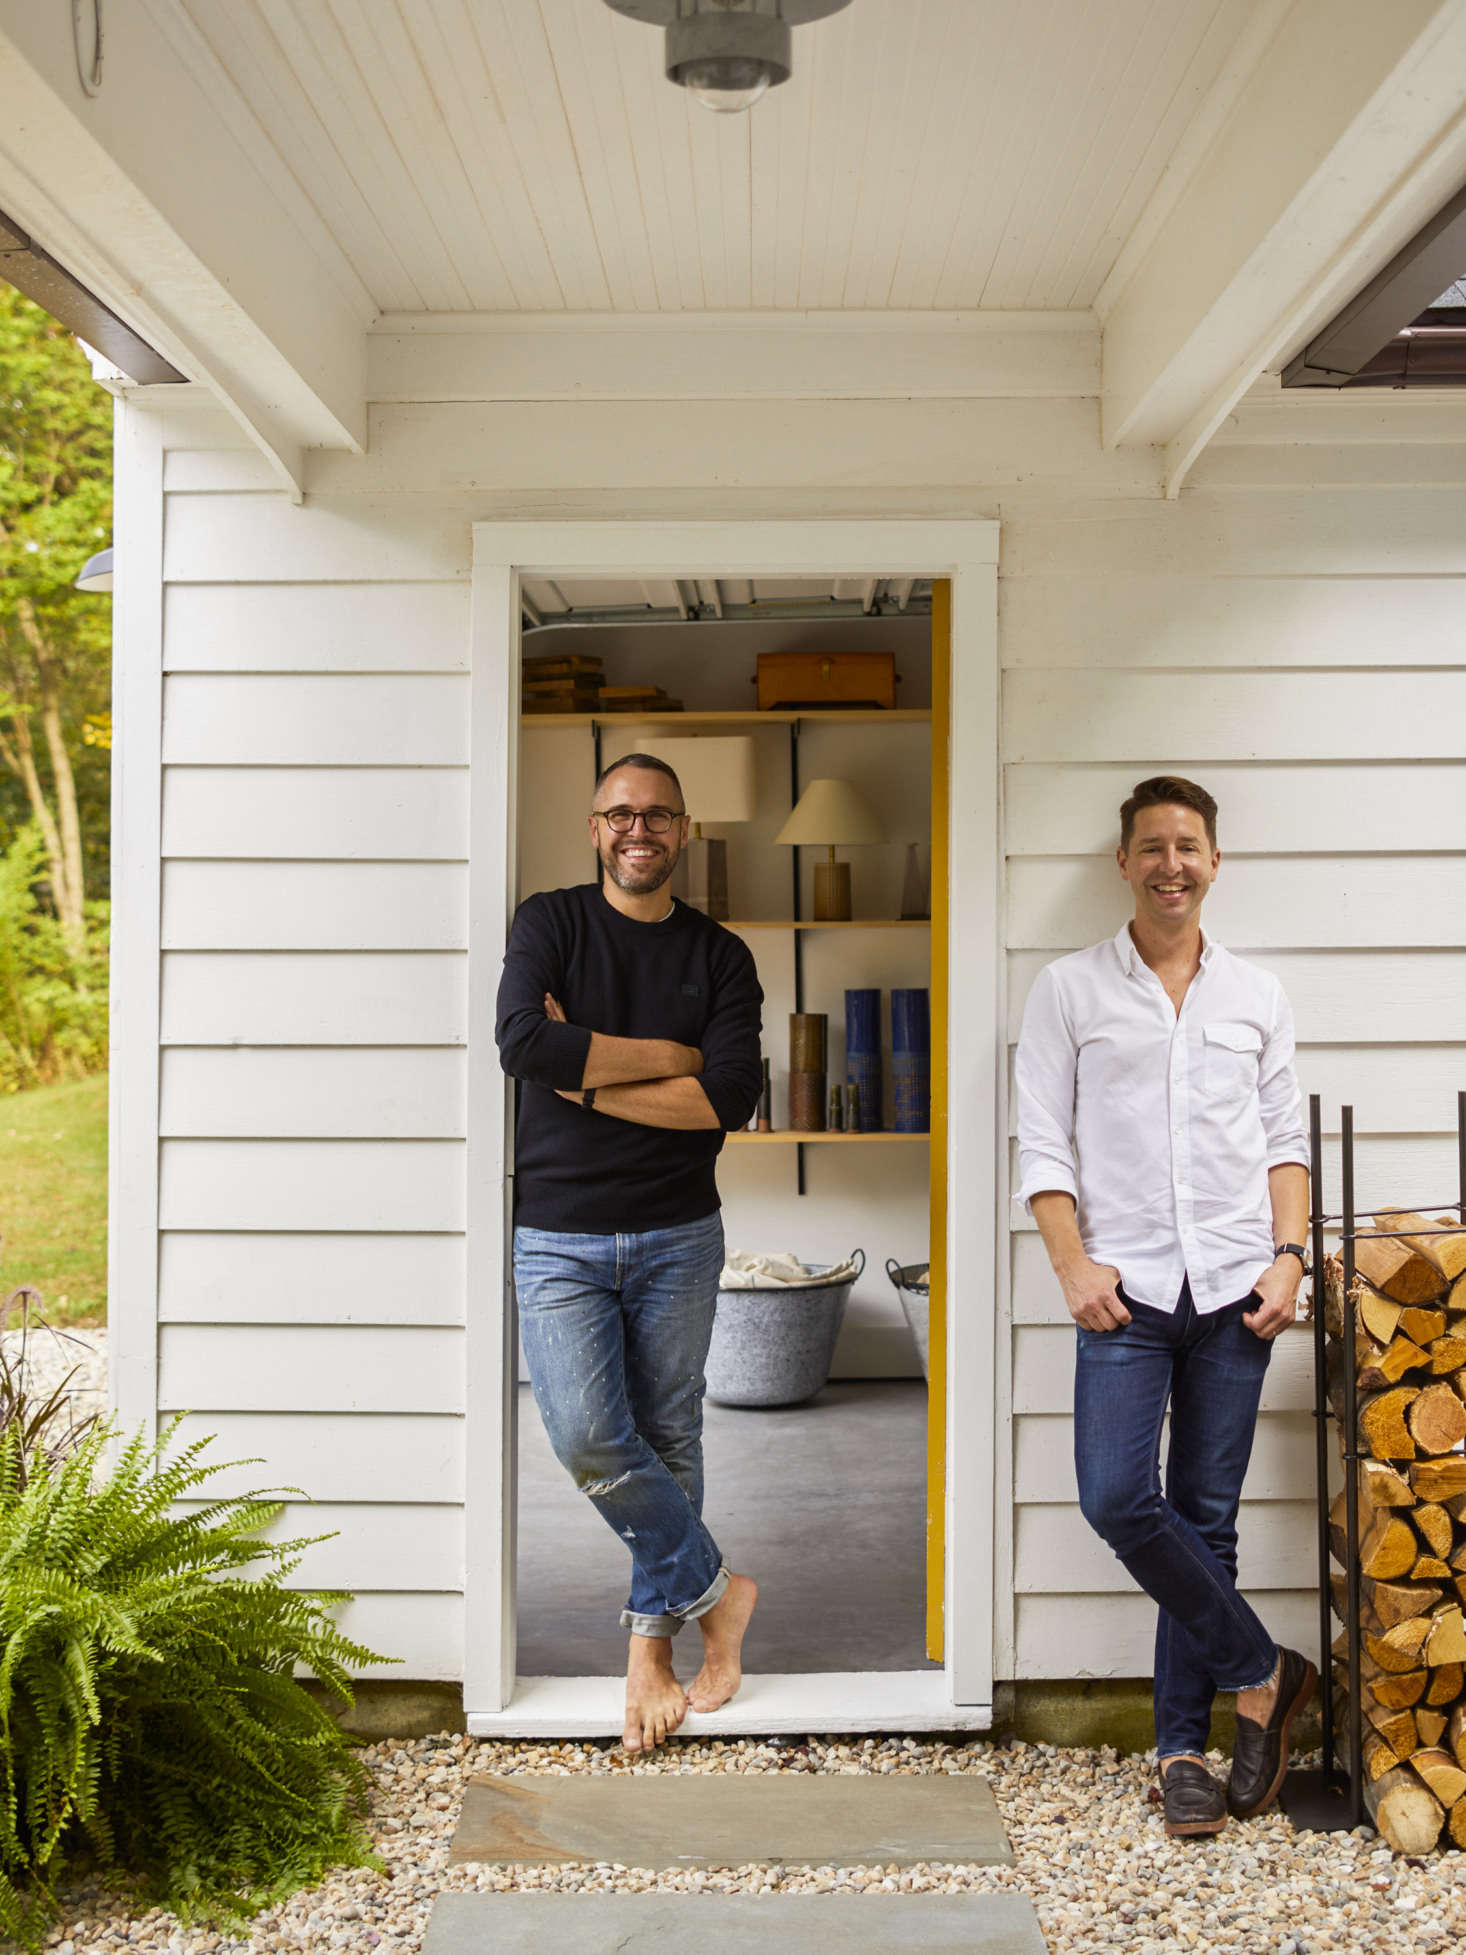 Charlie (L) and Keven (R) in the breezeway that links the kitchen door to the garage that they converted into Charlie&#8